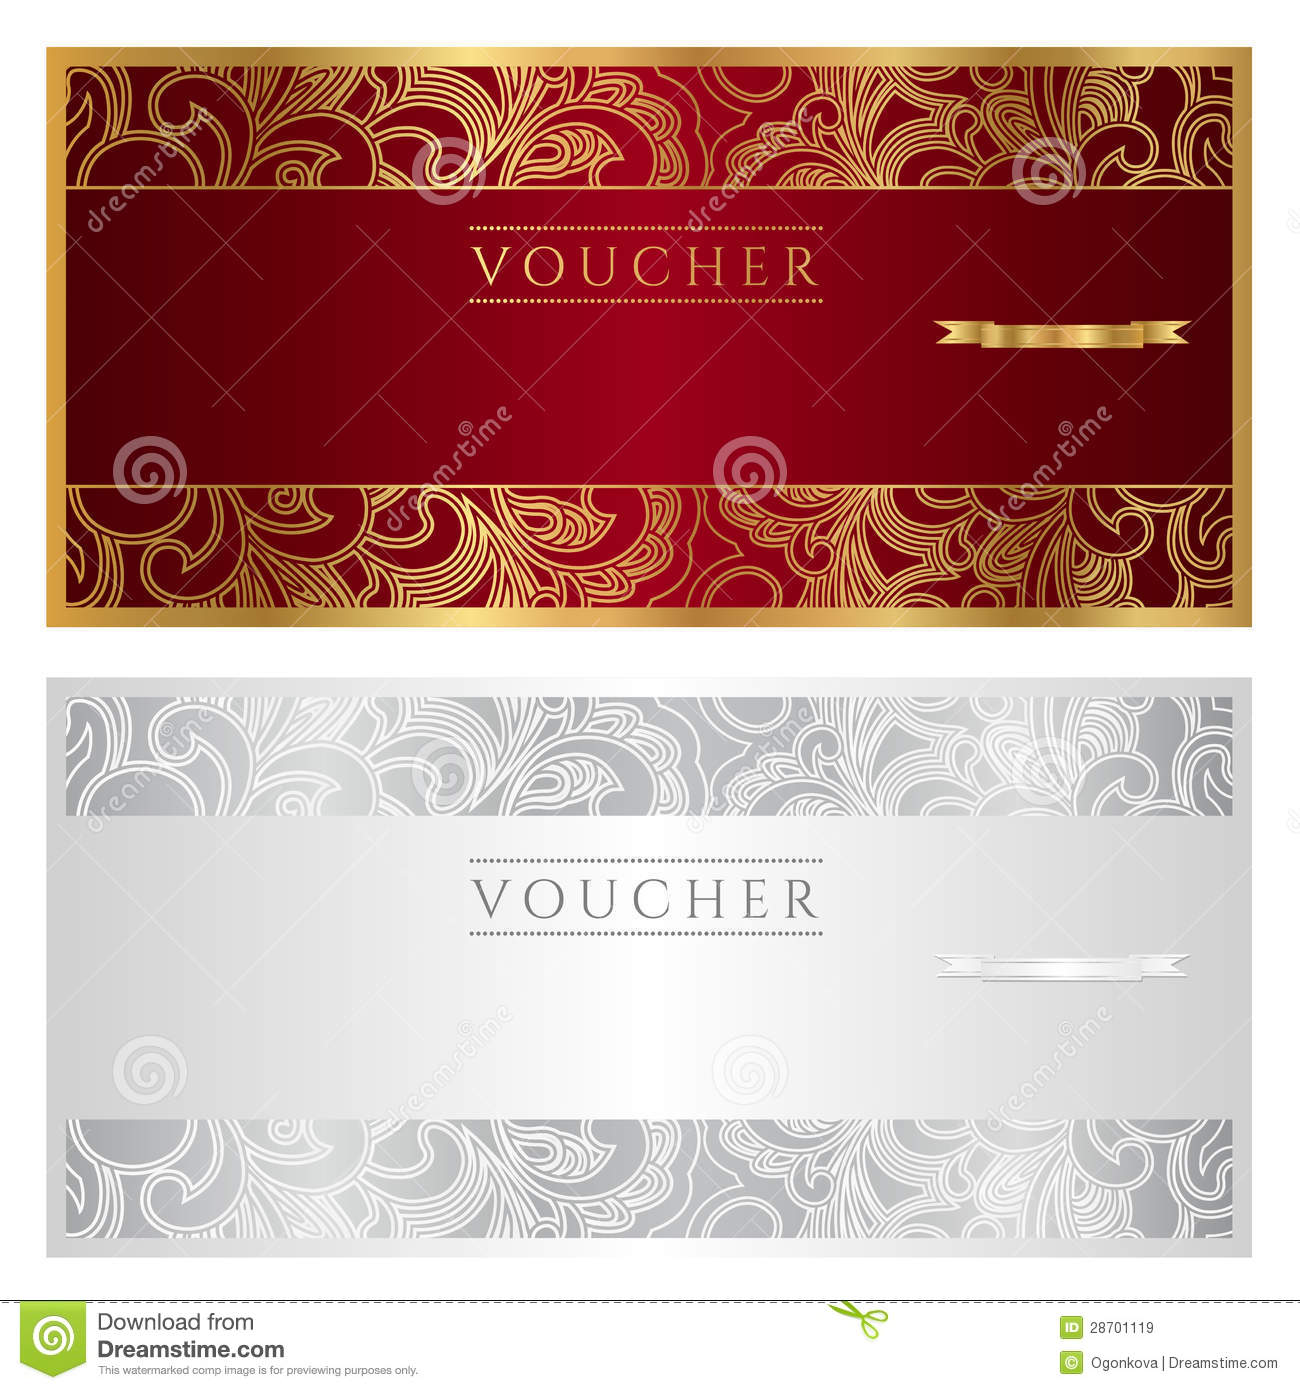 Voucher Coupon Gift Stock Vector Illustration Of Cheque 28701119